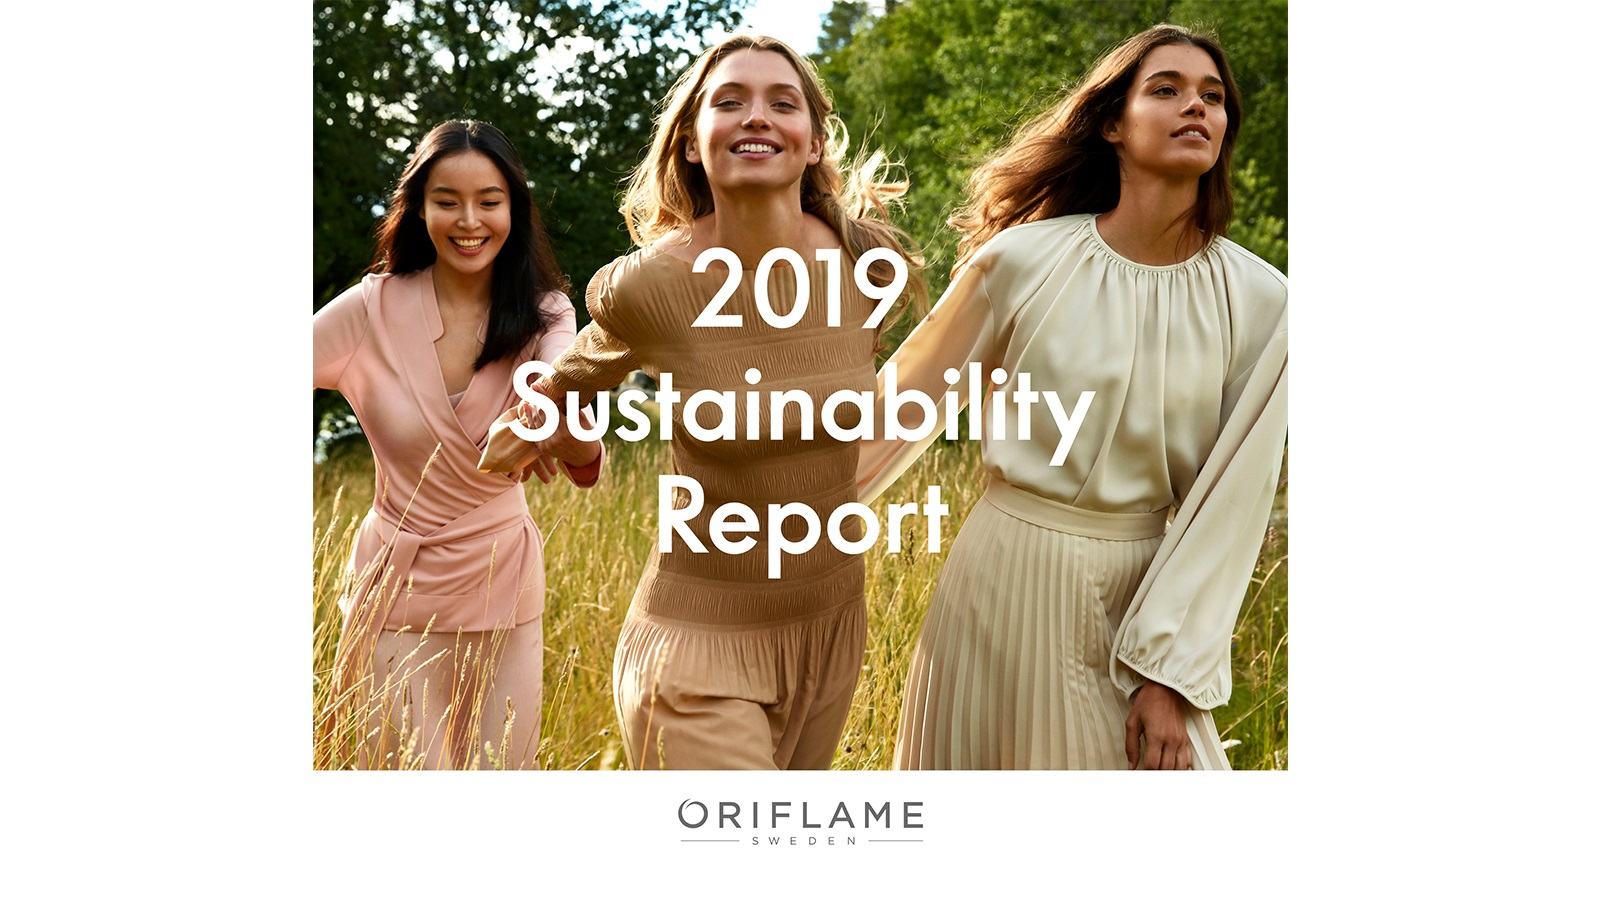 2019 Sustainability Report Oriflame